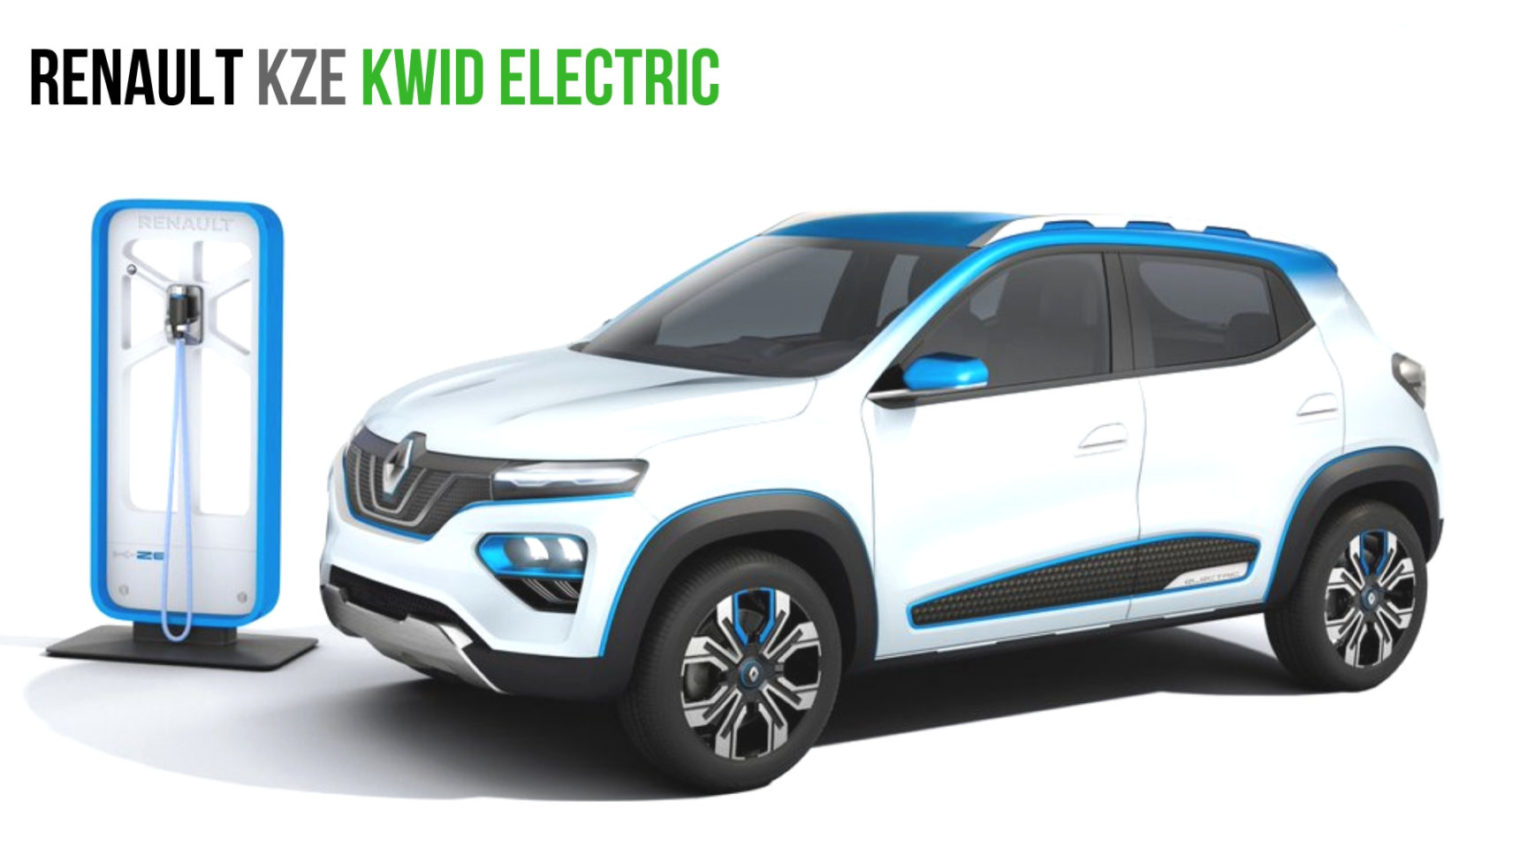 India-Bound Renault KWID Electric (Renault KZE) With 250 ...